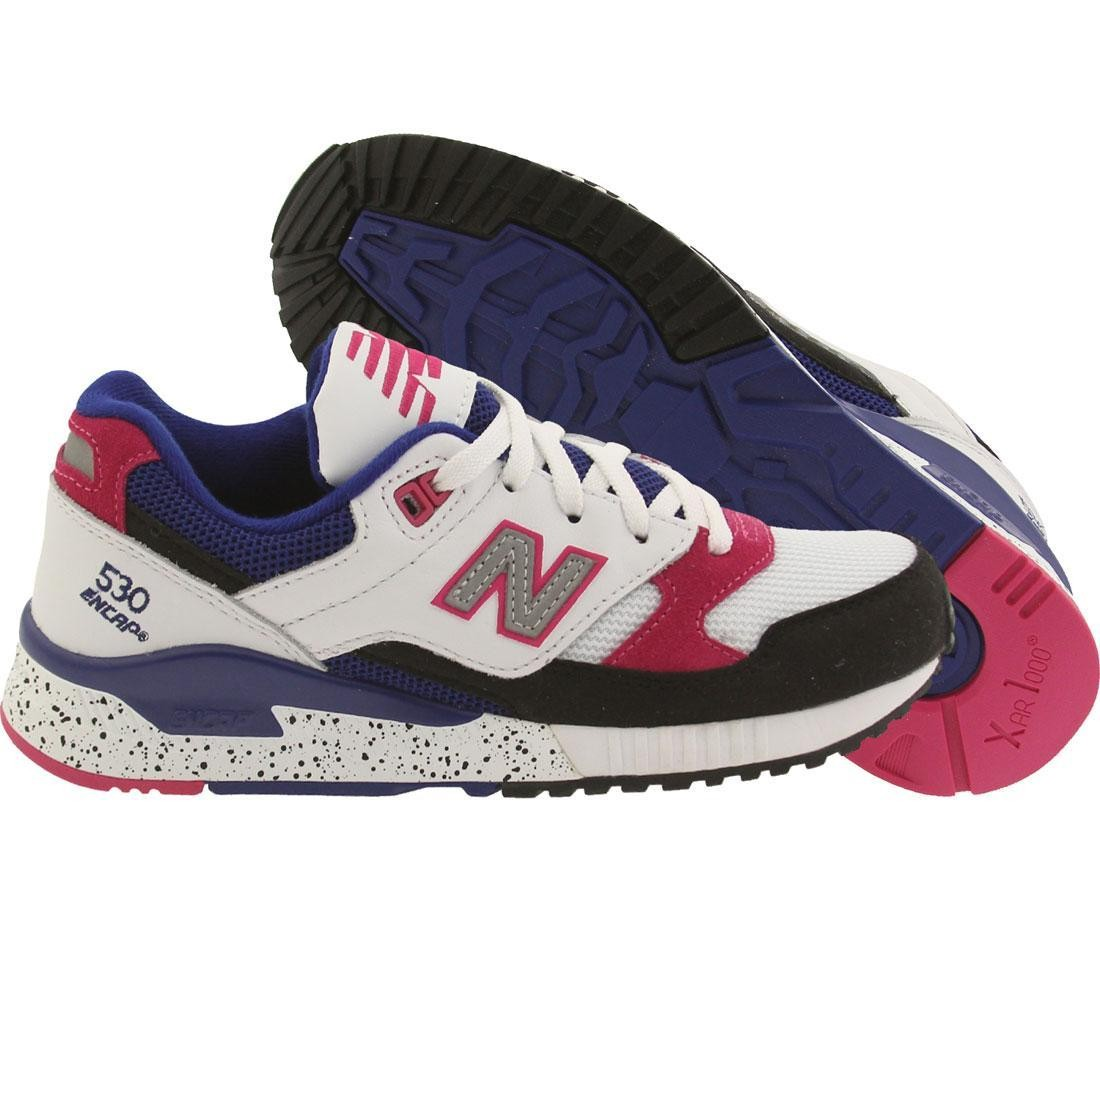 ... coupon new balance women 530 90s running leather w530psa white black  carnival pink 93a7e bfa31 27647c2b18